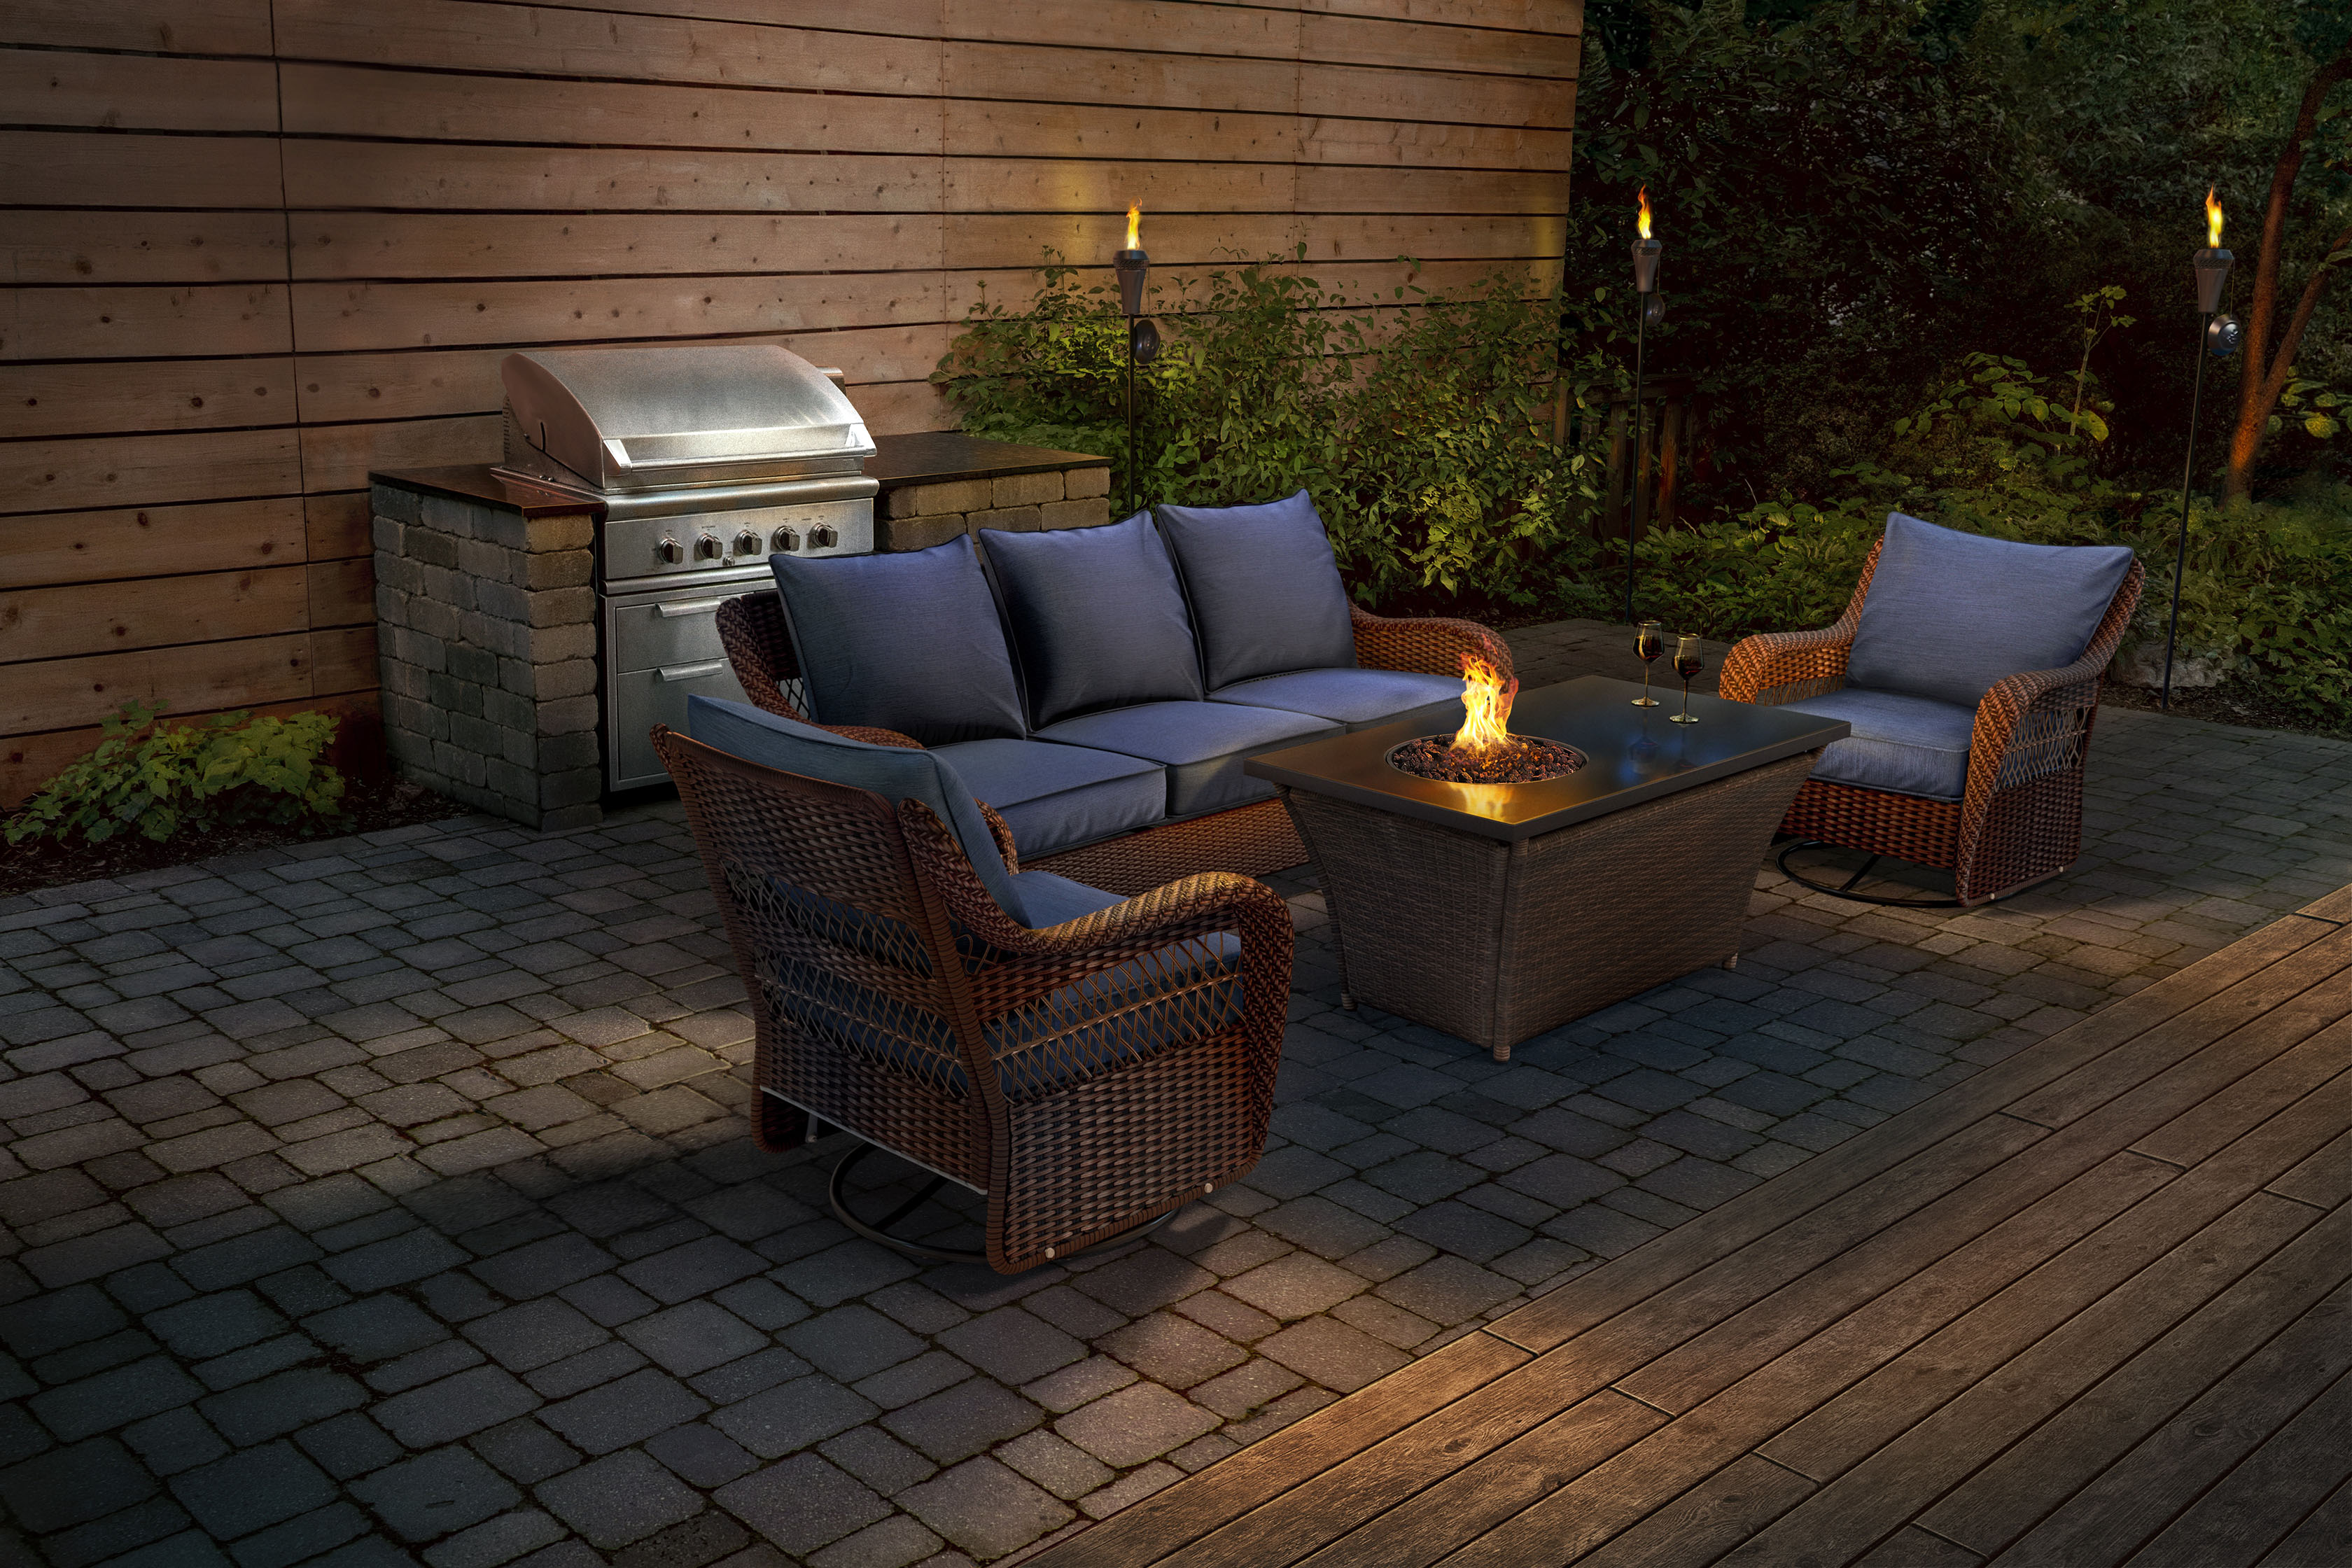 41275_Lowes_Evanston_Patio_v002_Fire_Table_Edges